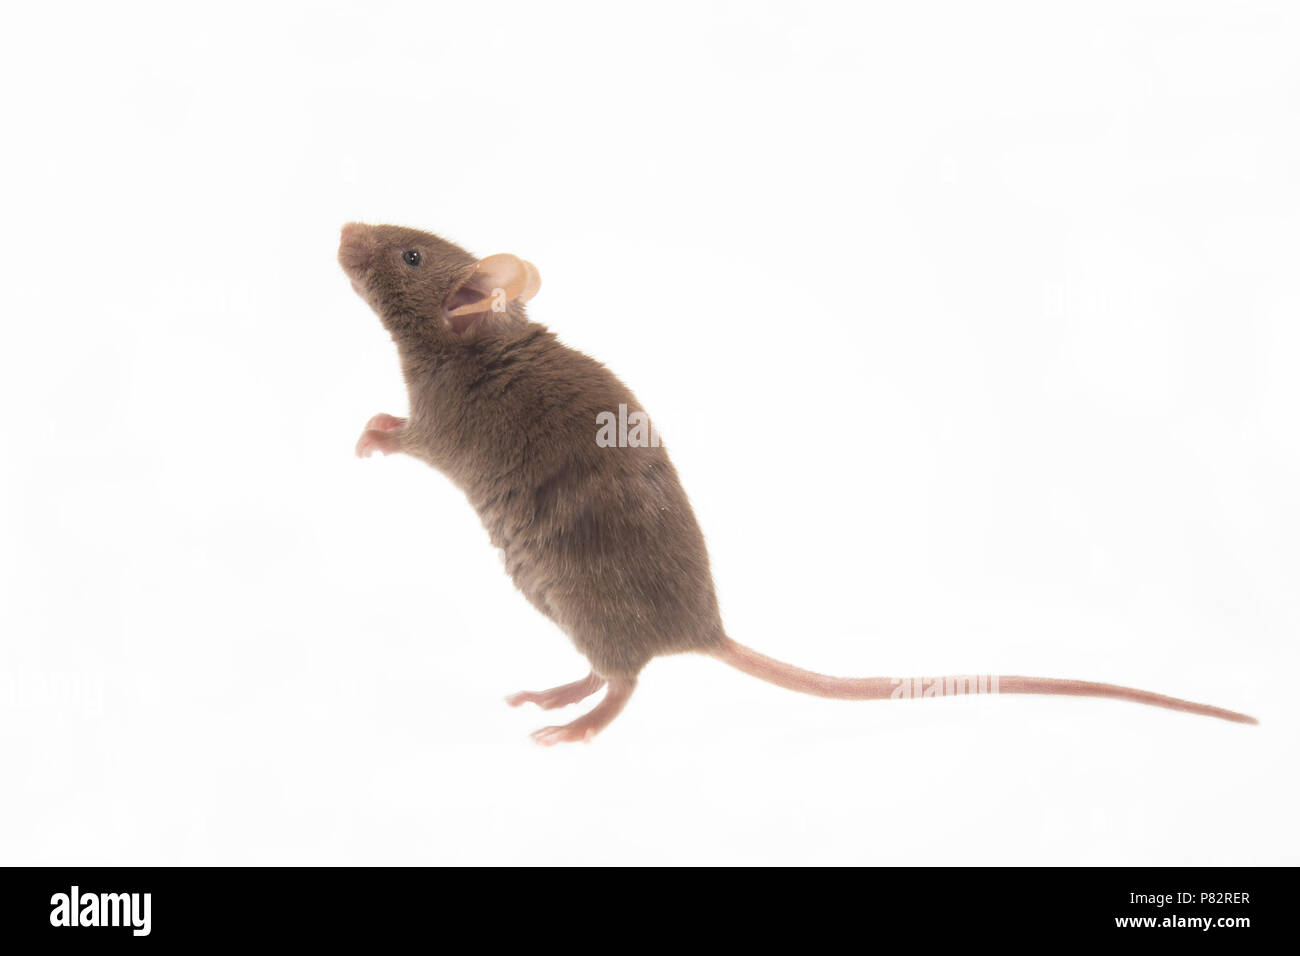 Huismuis, House Mouse, Mus musculus Stock Photo